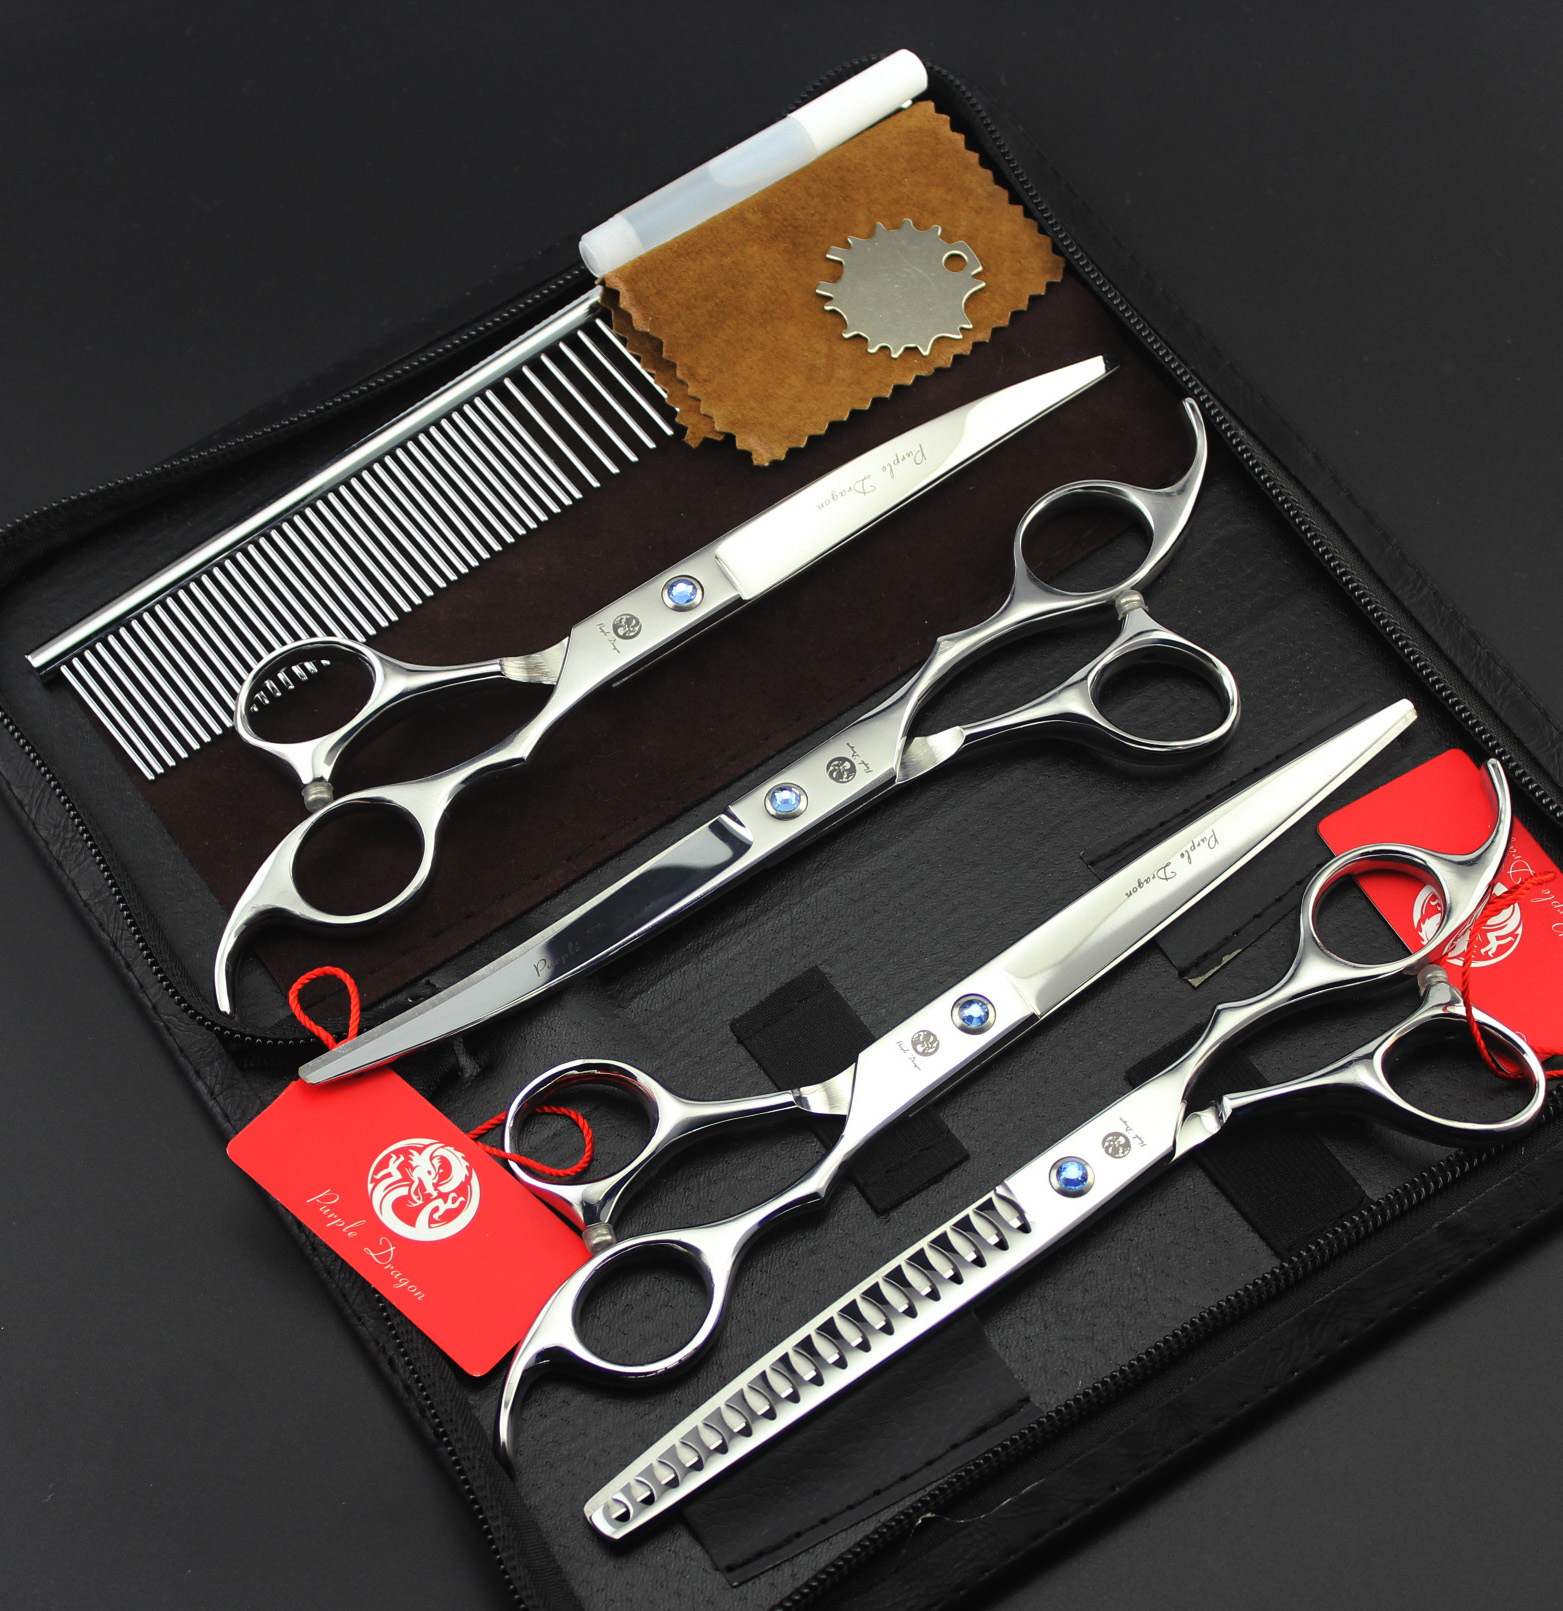 7inch Professional grooming scissors sets pet 1pc 1pcTHINNING 2 pcs 4pcs7inch Professional grooming scissors sets pet 1pc 1pcTHINNING 2 pcs 4pcs